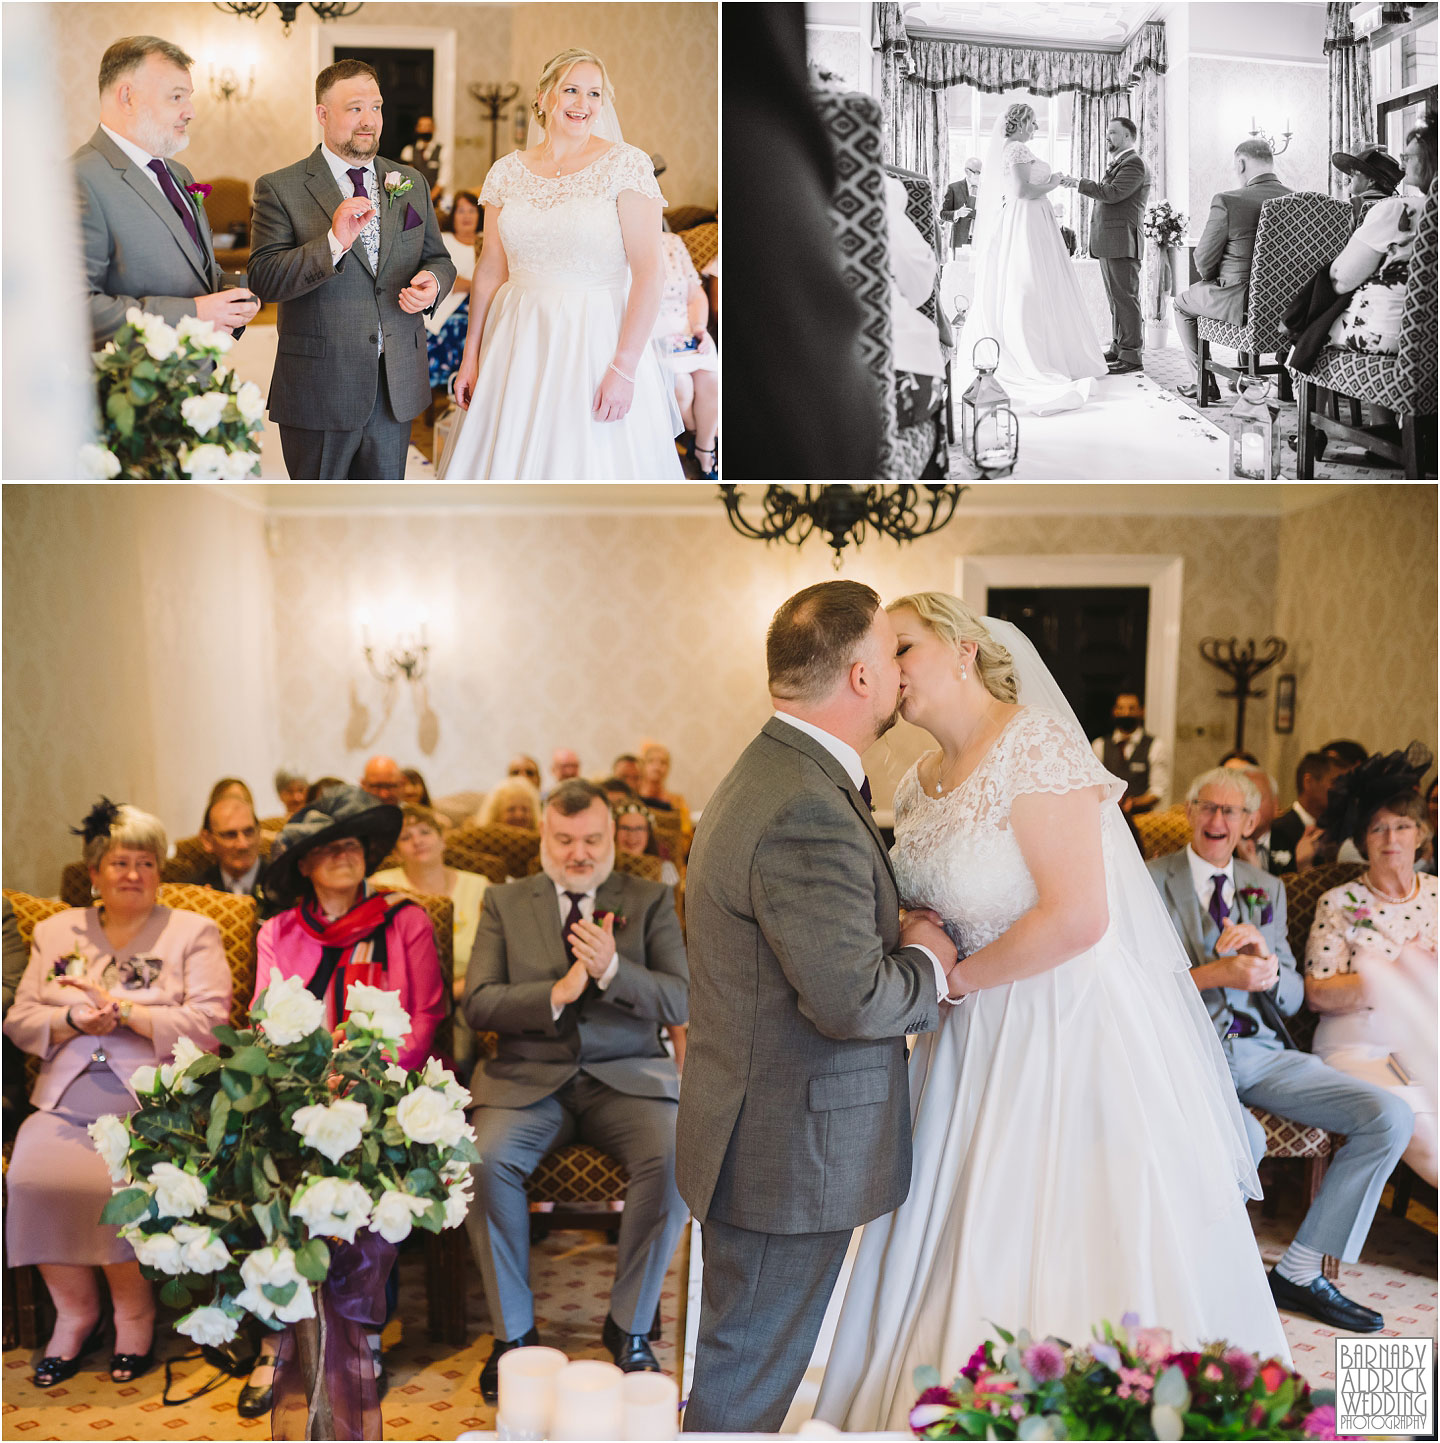 Civil Wedding Ceremony at Weetwood Hall Wedding Yorkshire, Weetwood Hall Leeds, Leeds Wedding Photographer, Yorkshire Wedding Photographer